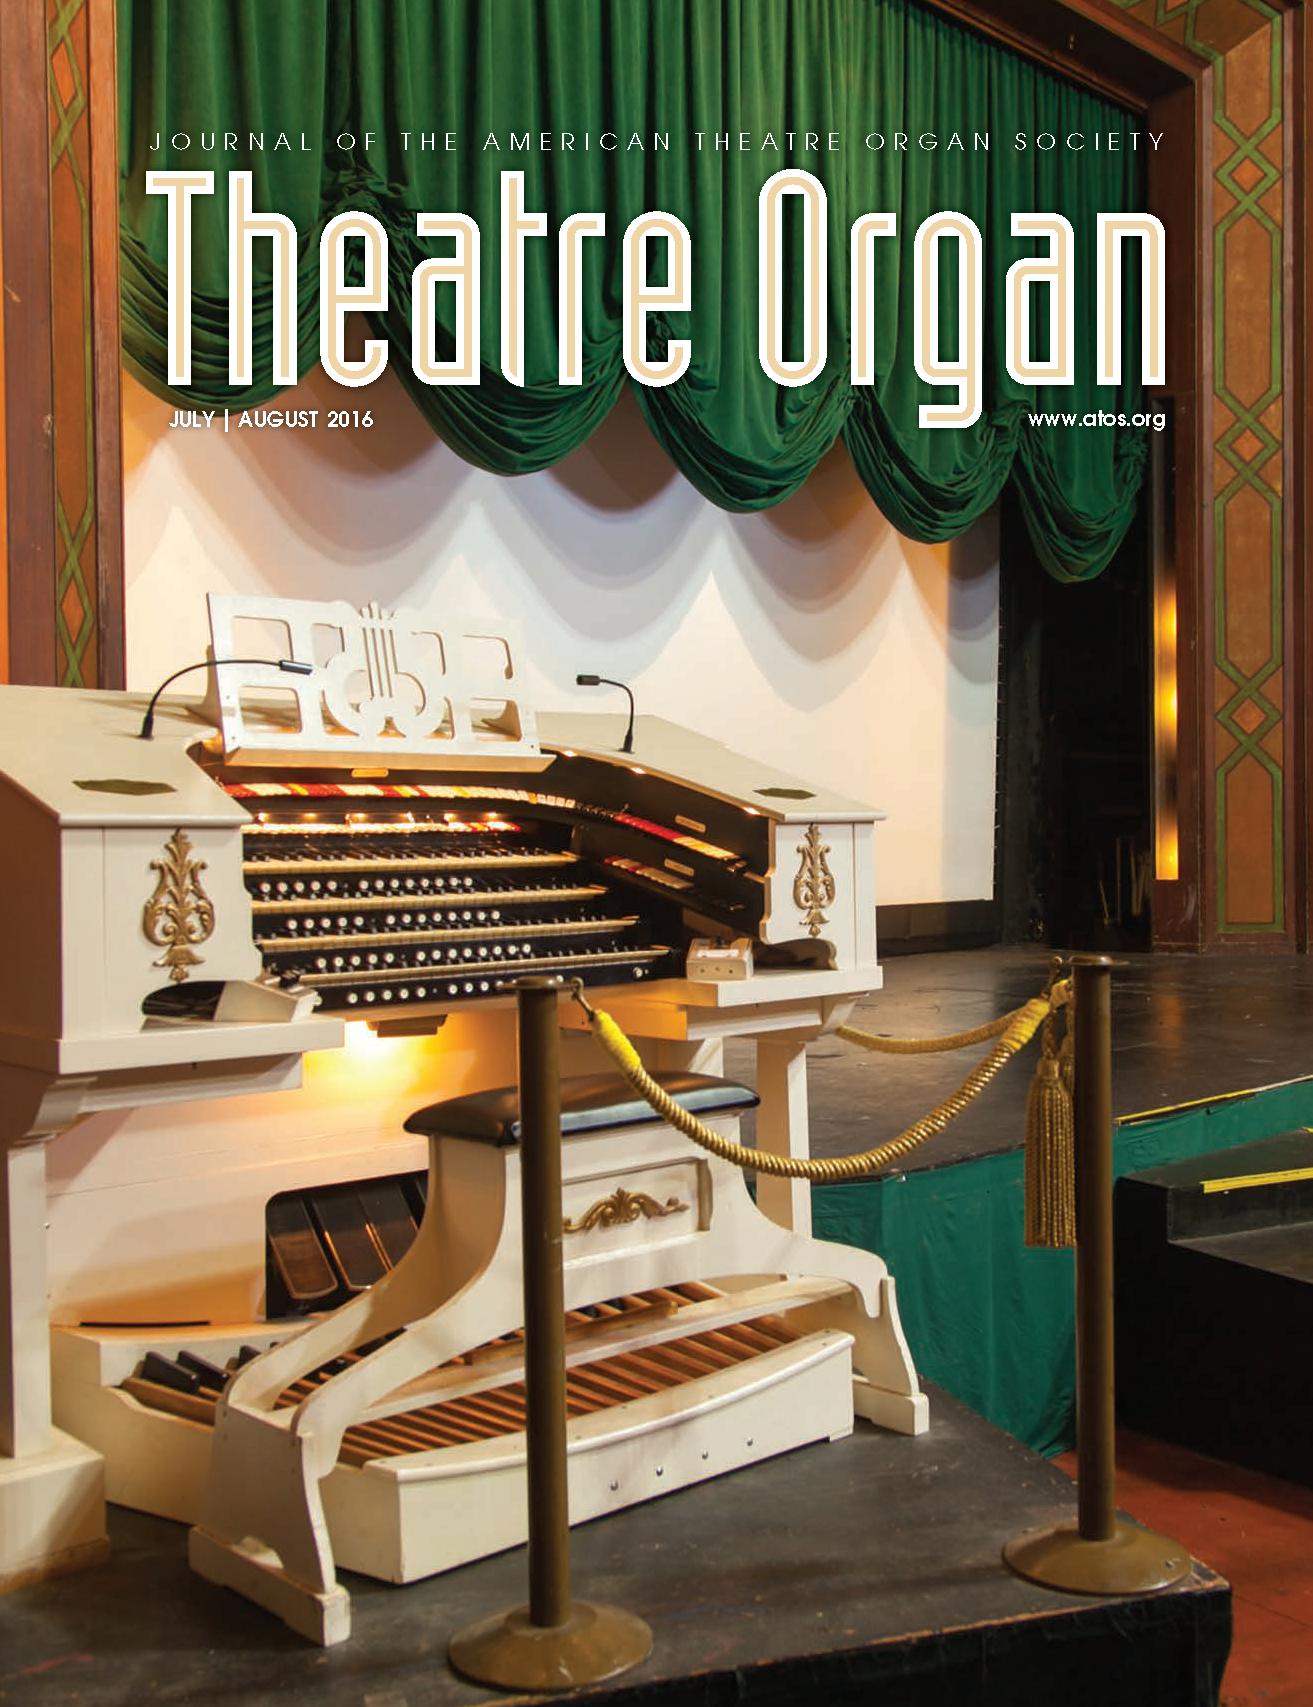 Theatre Organ, July - August 2016, Volume 58, Number 4